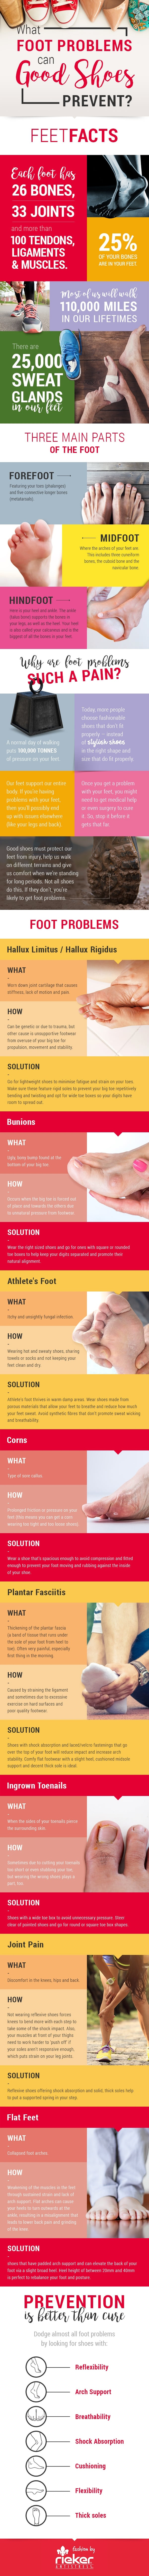 Feet Facts and How Good Shoes Can Prevent Problems - Infographic